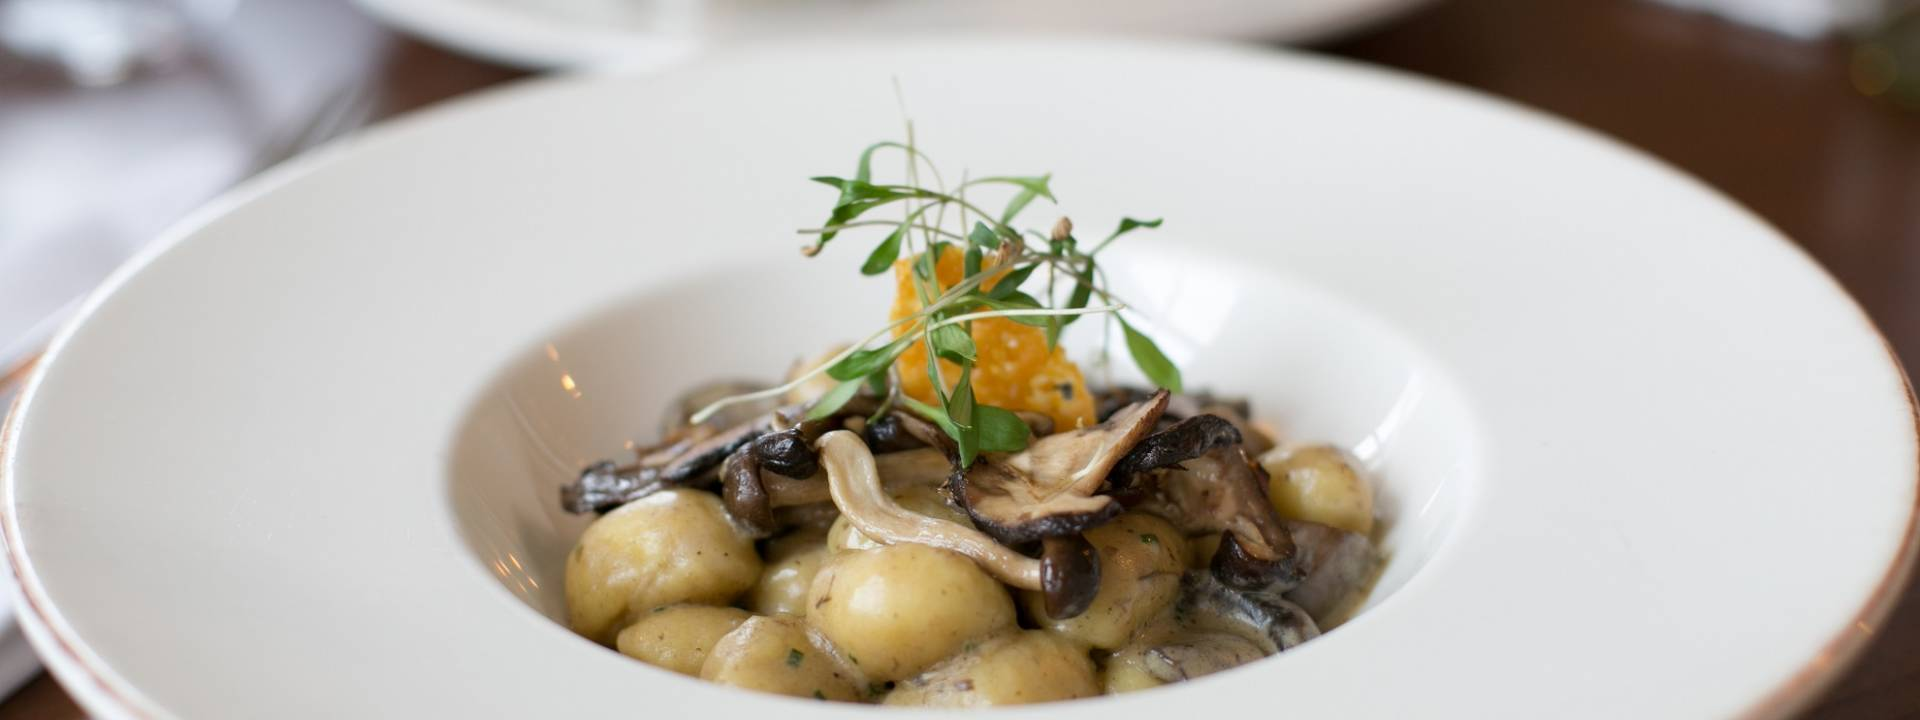 Mushroom and Gnocchi recipe The Narrow